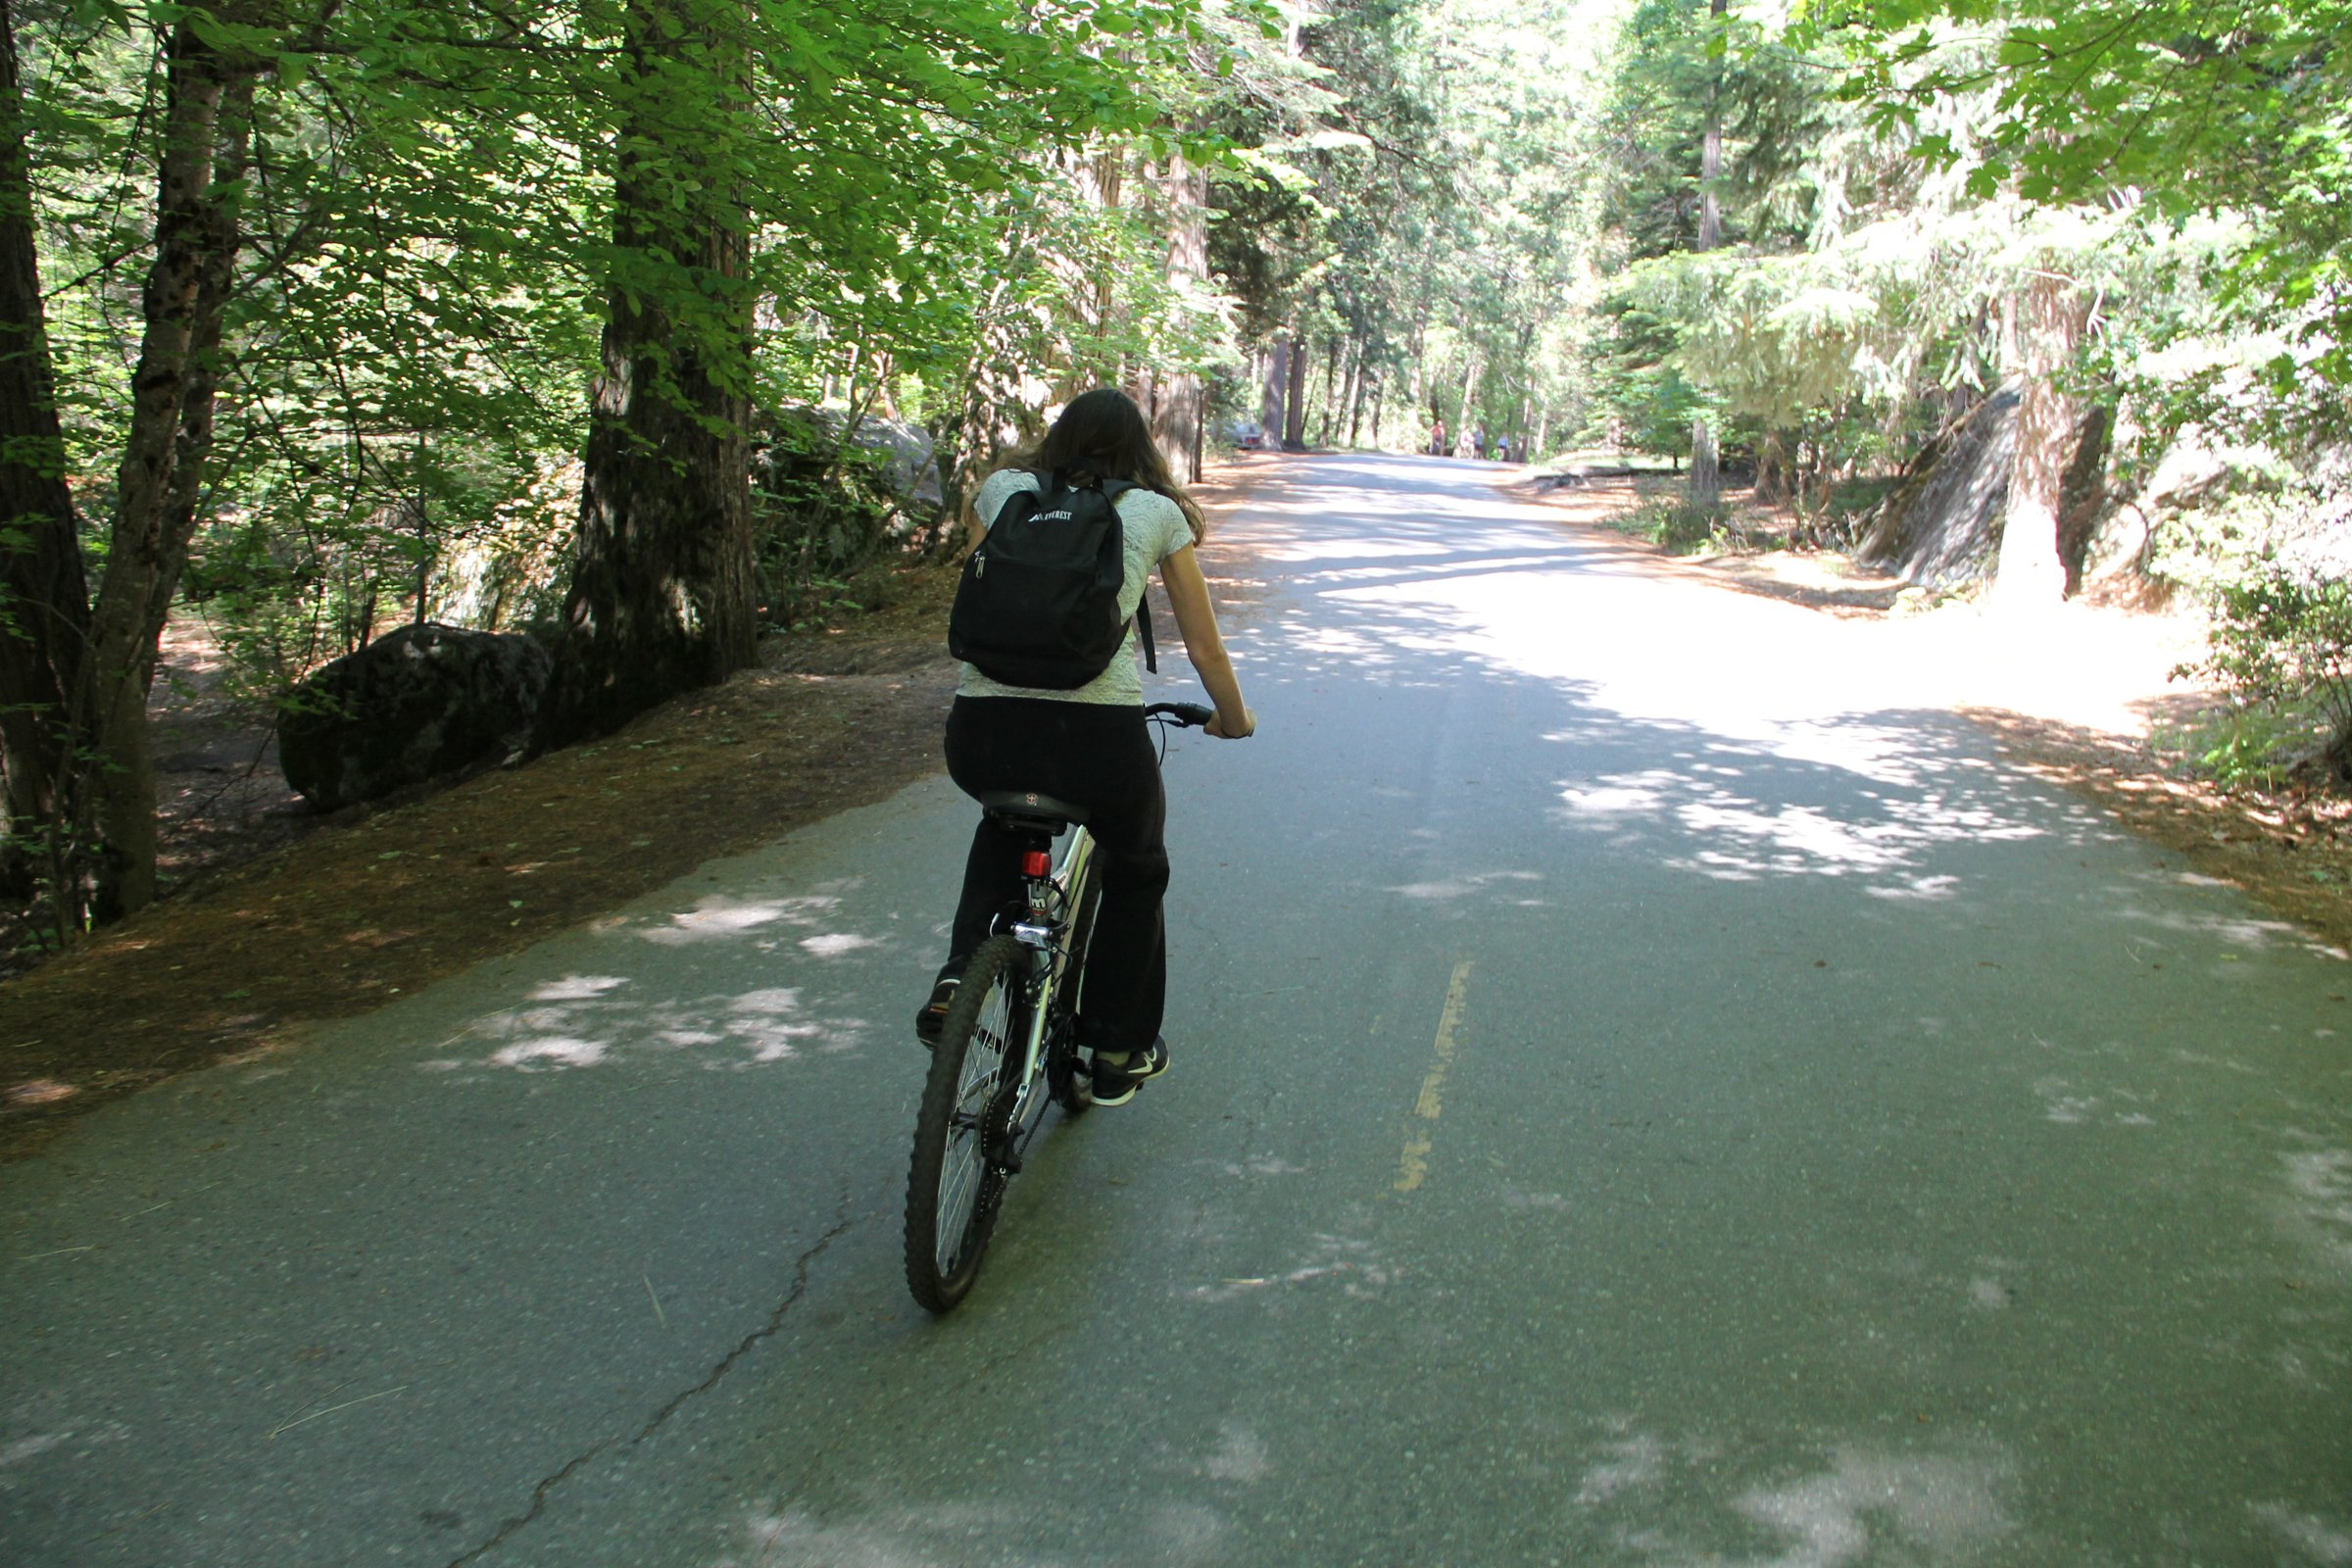 Girl Riding Bicycle on Forest Path